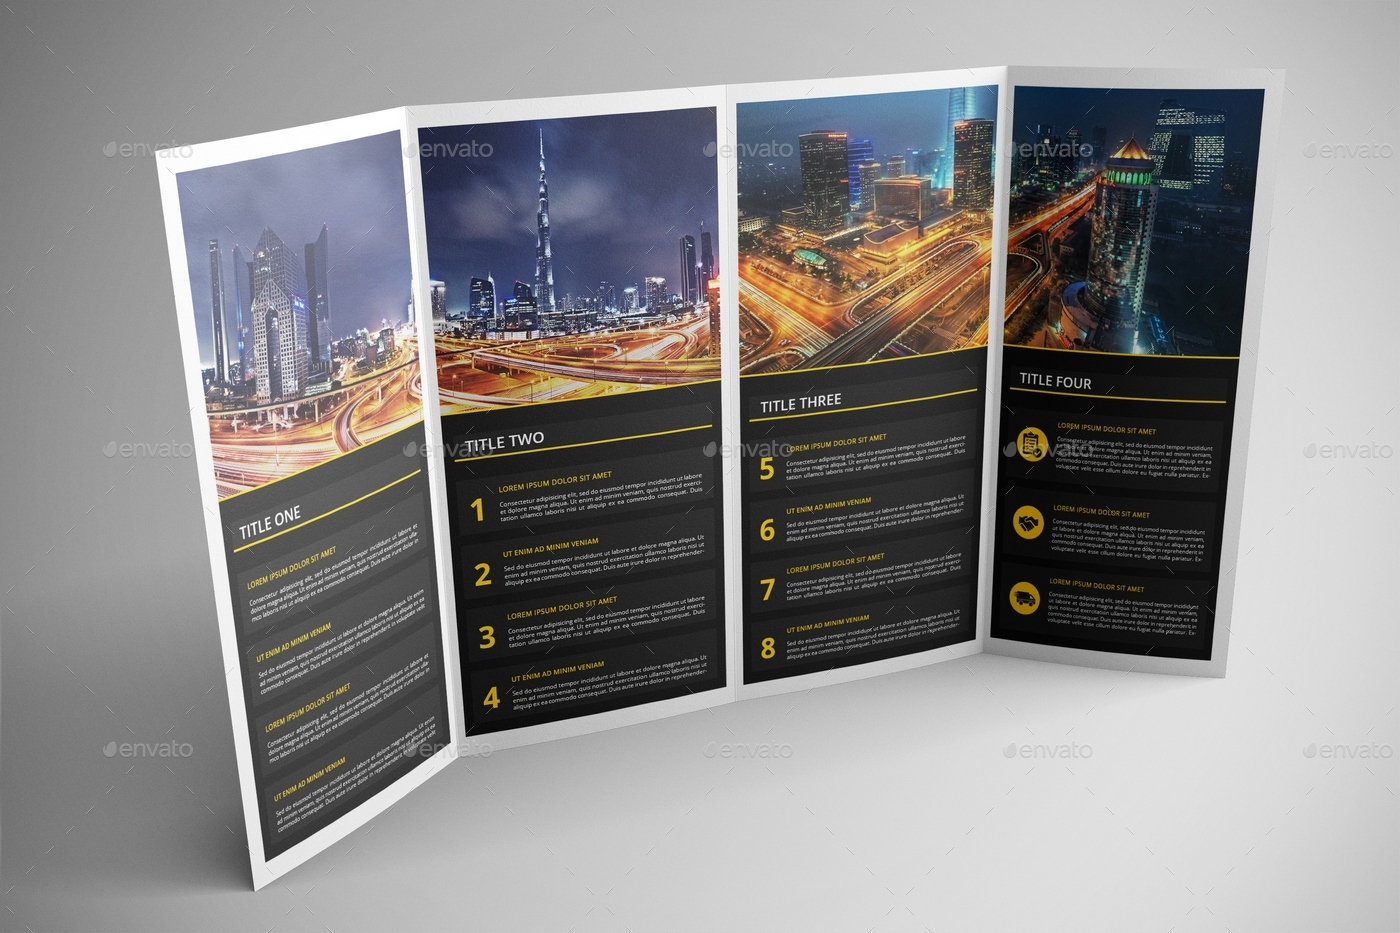 Good Double Gatefold Brochure Mock Up 2   Brochures Print. View 01  View 02 View 03 View 04 View 05 View 06 View 07  View 08 ...